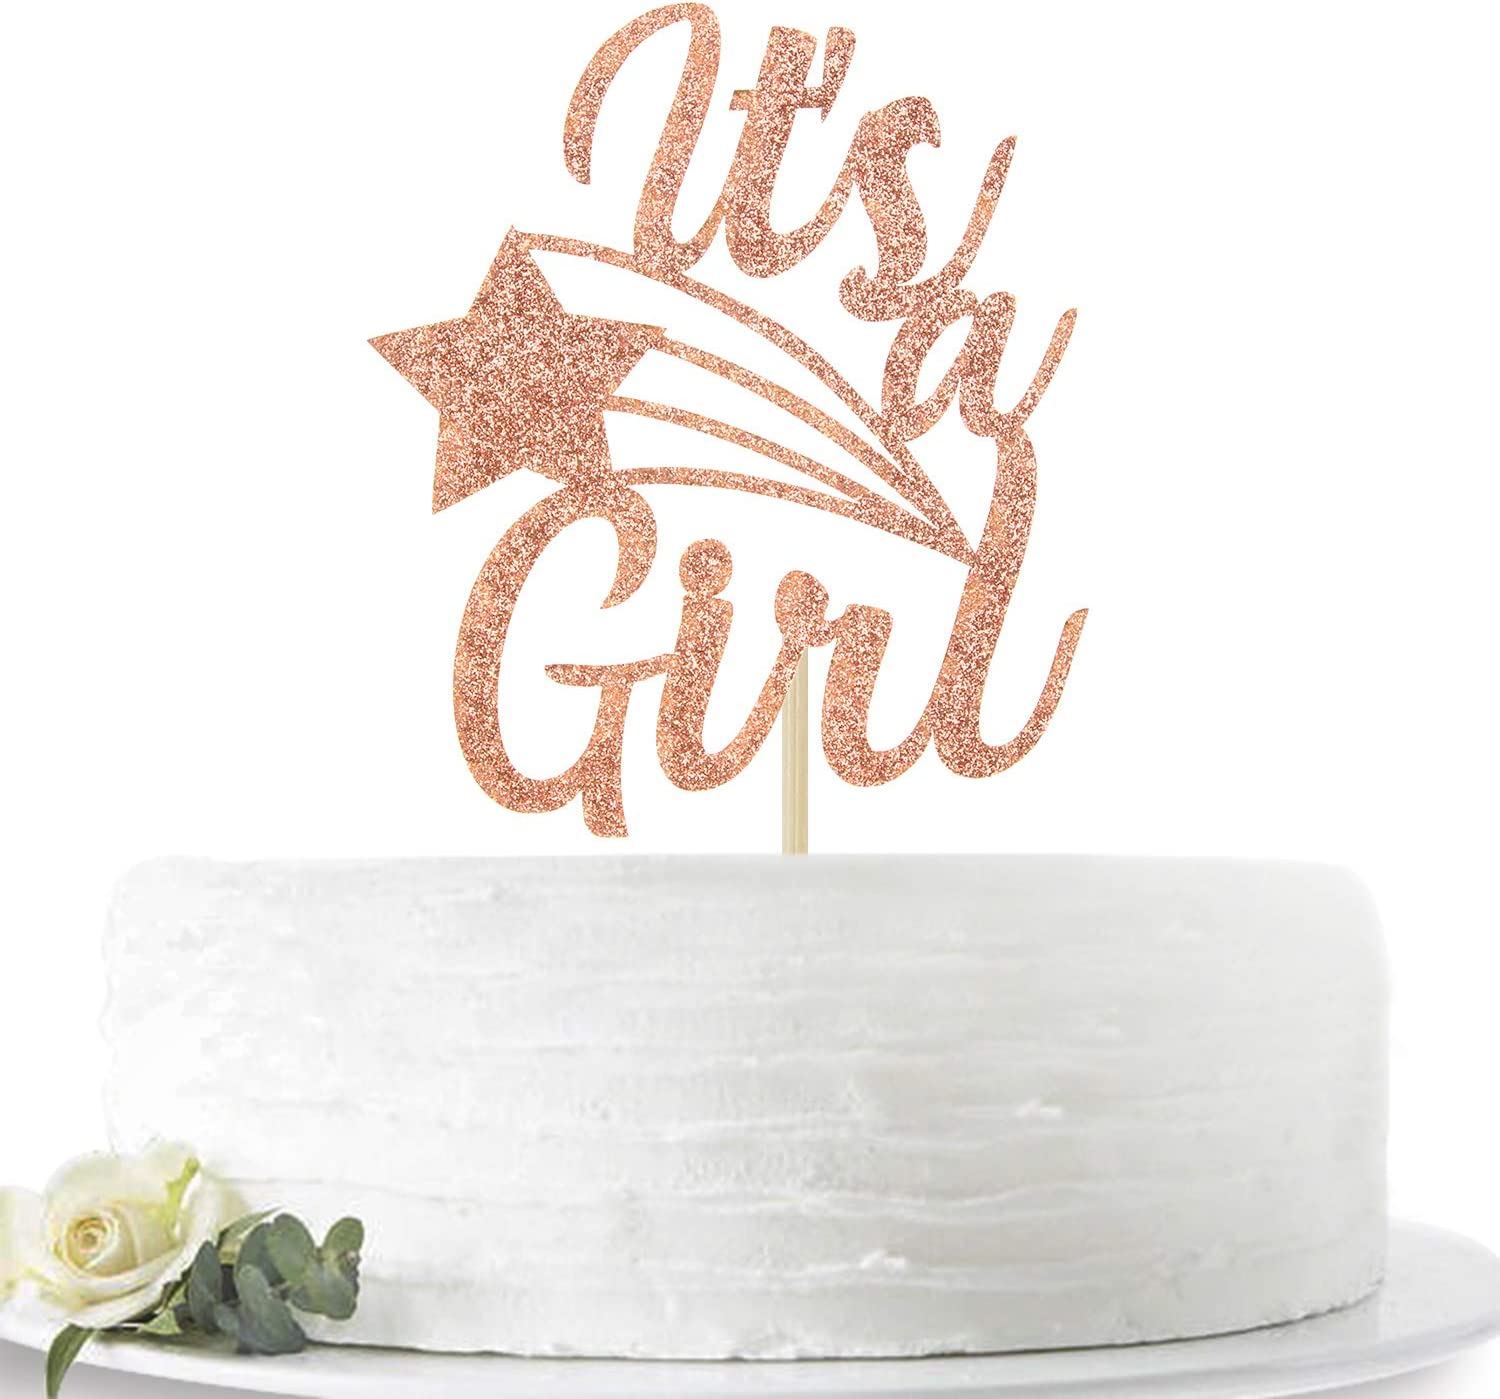 Pink Glittery It's a Girl Cake Topper for Baby Shower, Baby Gilr 1st 2nd 3rd Birthday, Sweet Baby Girl Decor, Gender Reveal Party Decoration Supplies